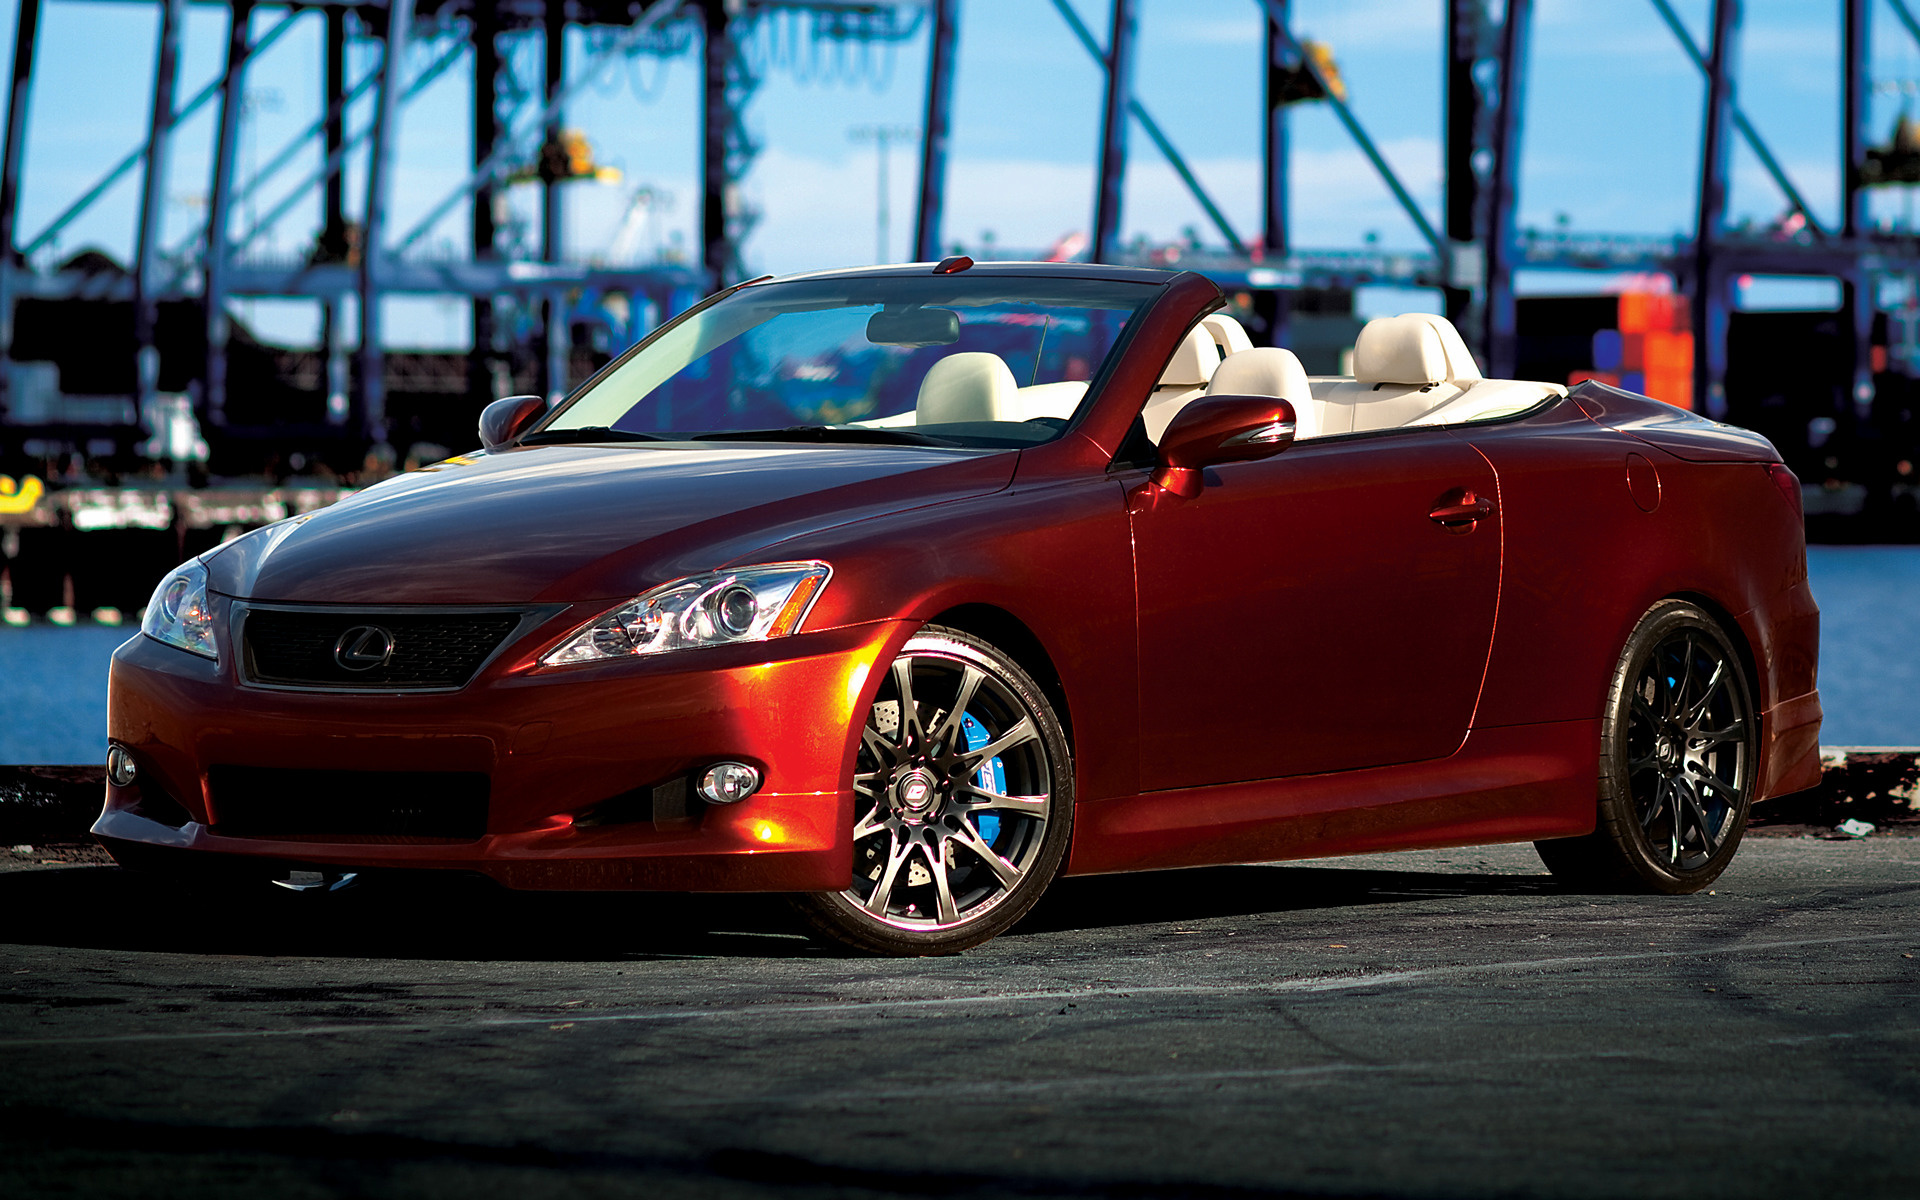 lexus is convertible f sport by trd 2009 wallpapers and hd images car pixel. Black Bedroom Furniture Sets. Home Design Ideas